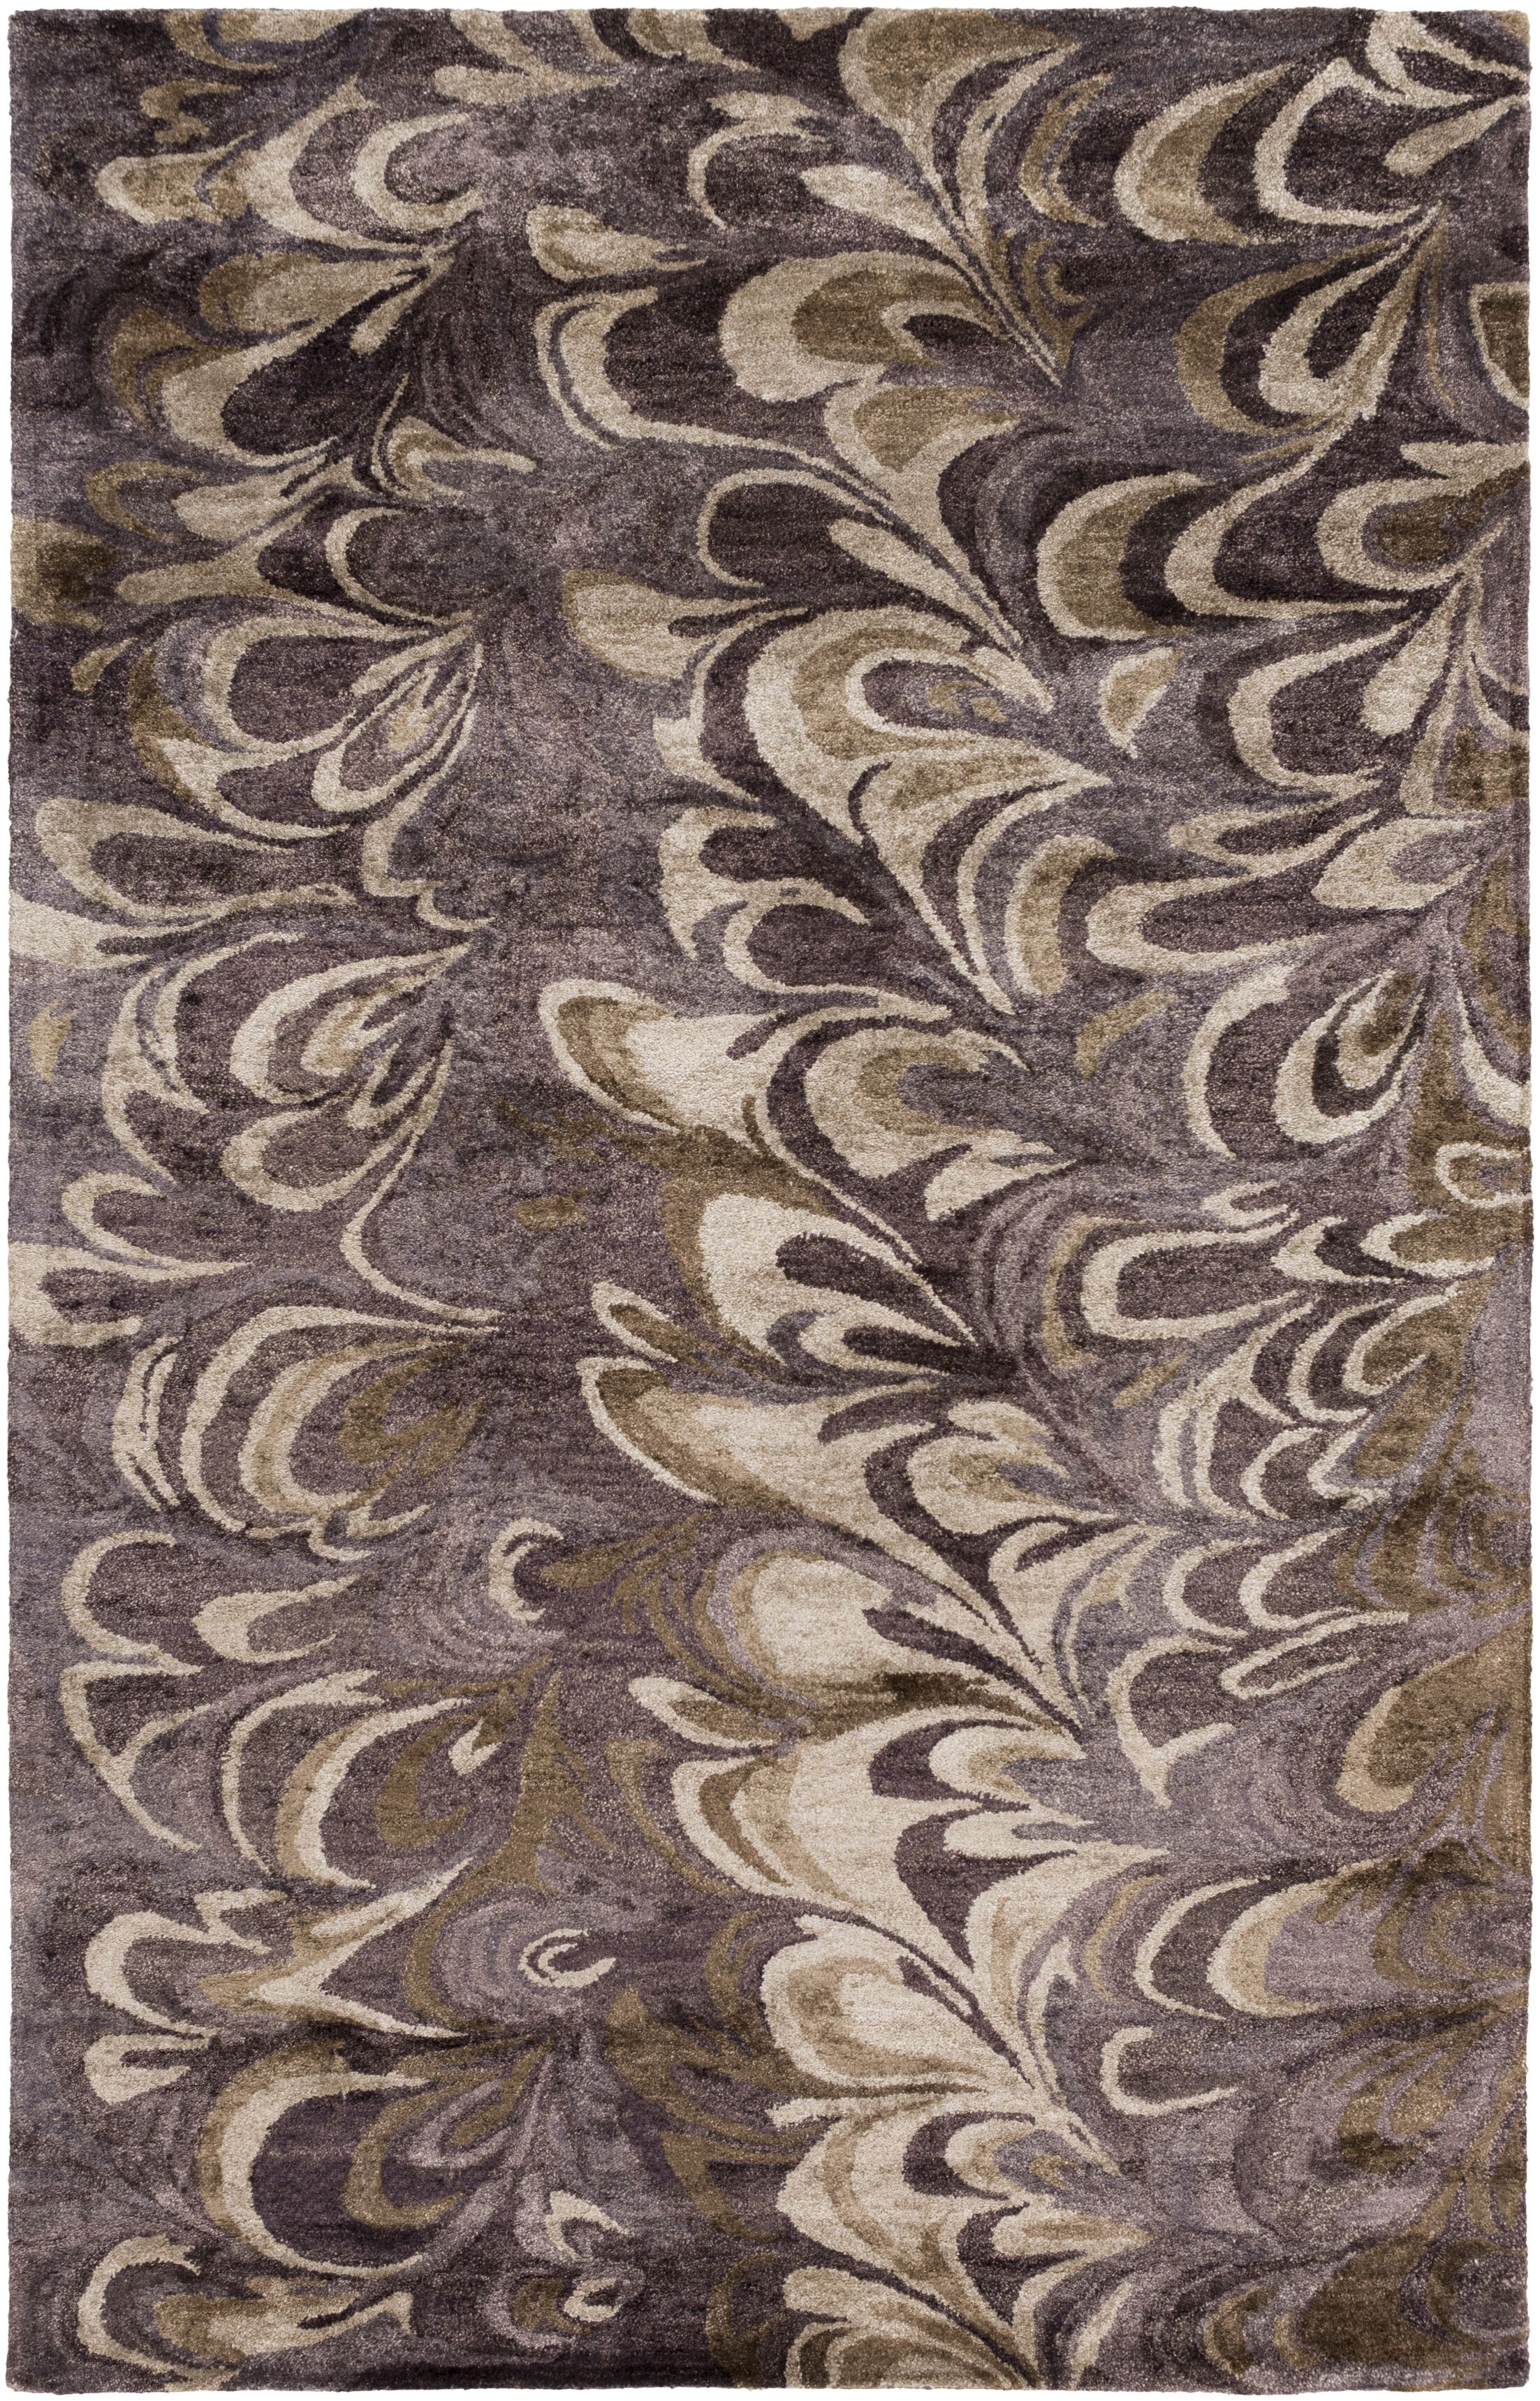 Scylla Multi-Colored Rug Rug Size: Rectangle 3'6